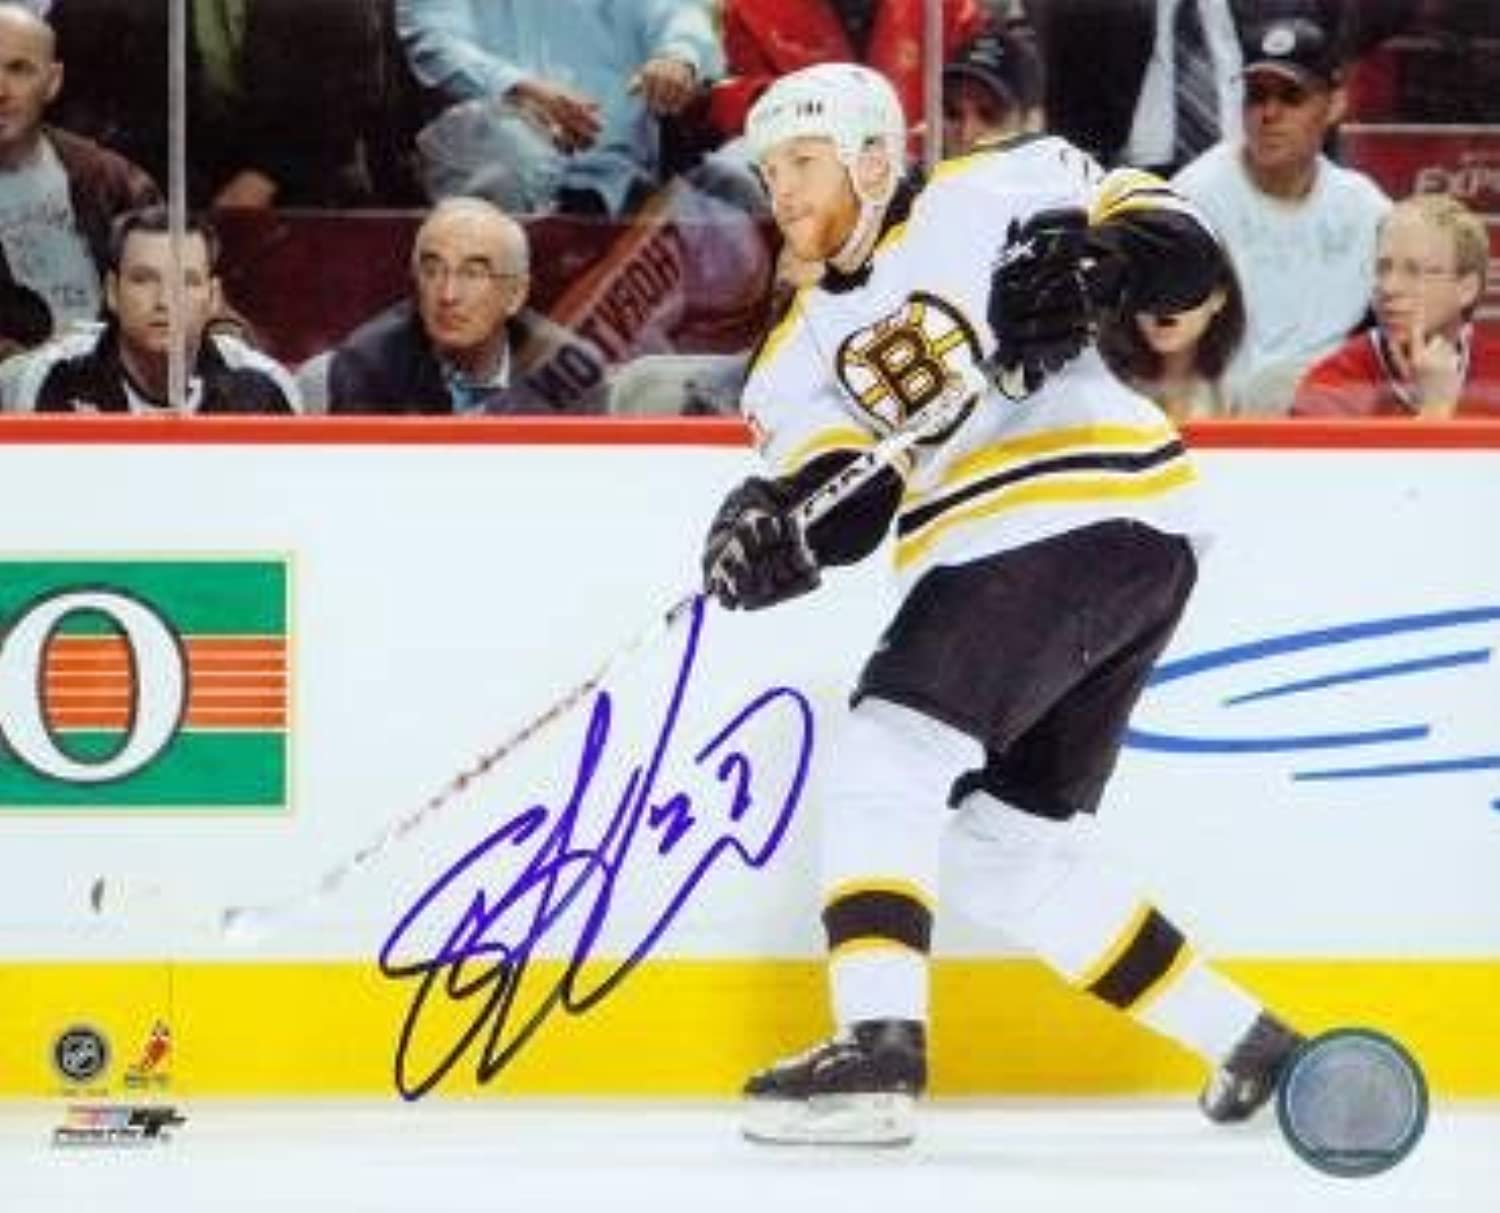 Shawn Thornton Signed Photograph  8x10  Autographed NHL Photos